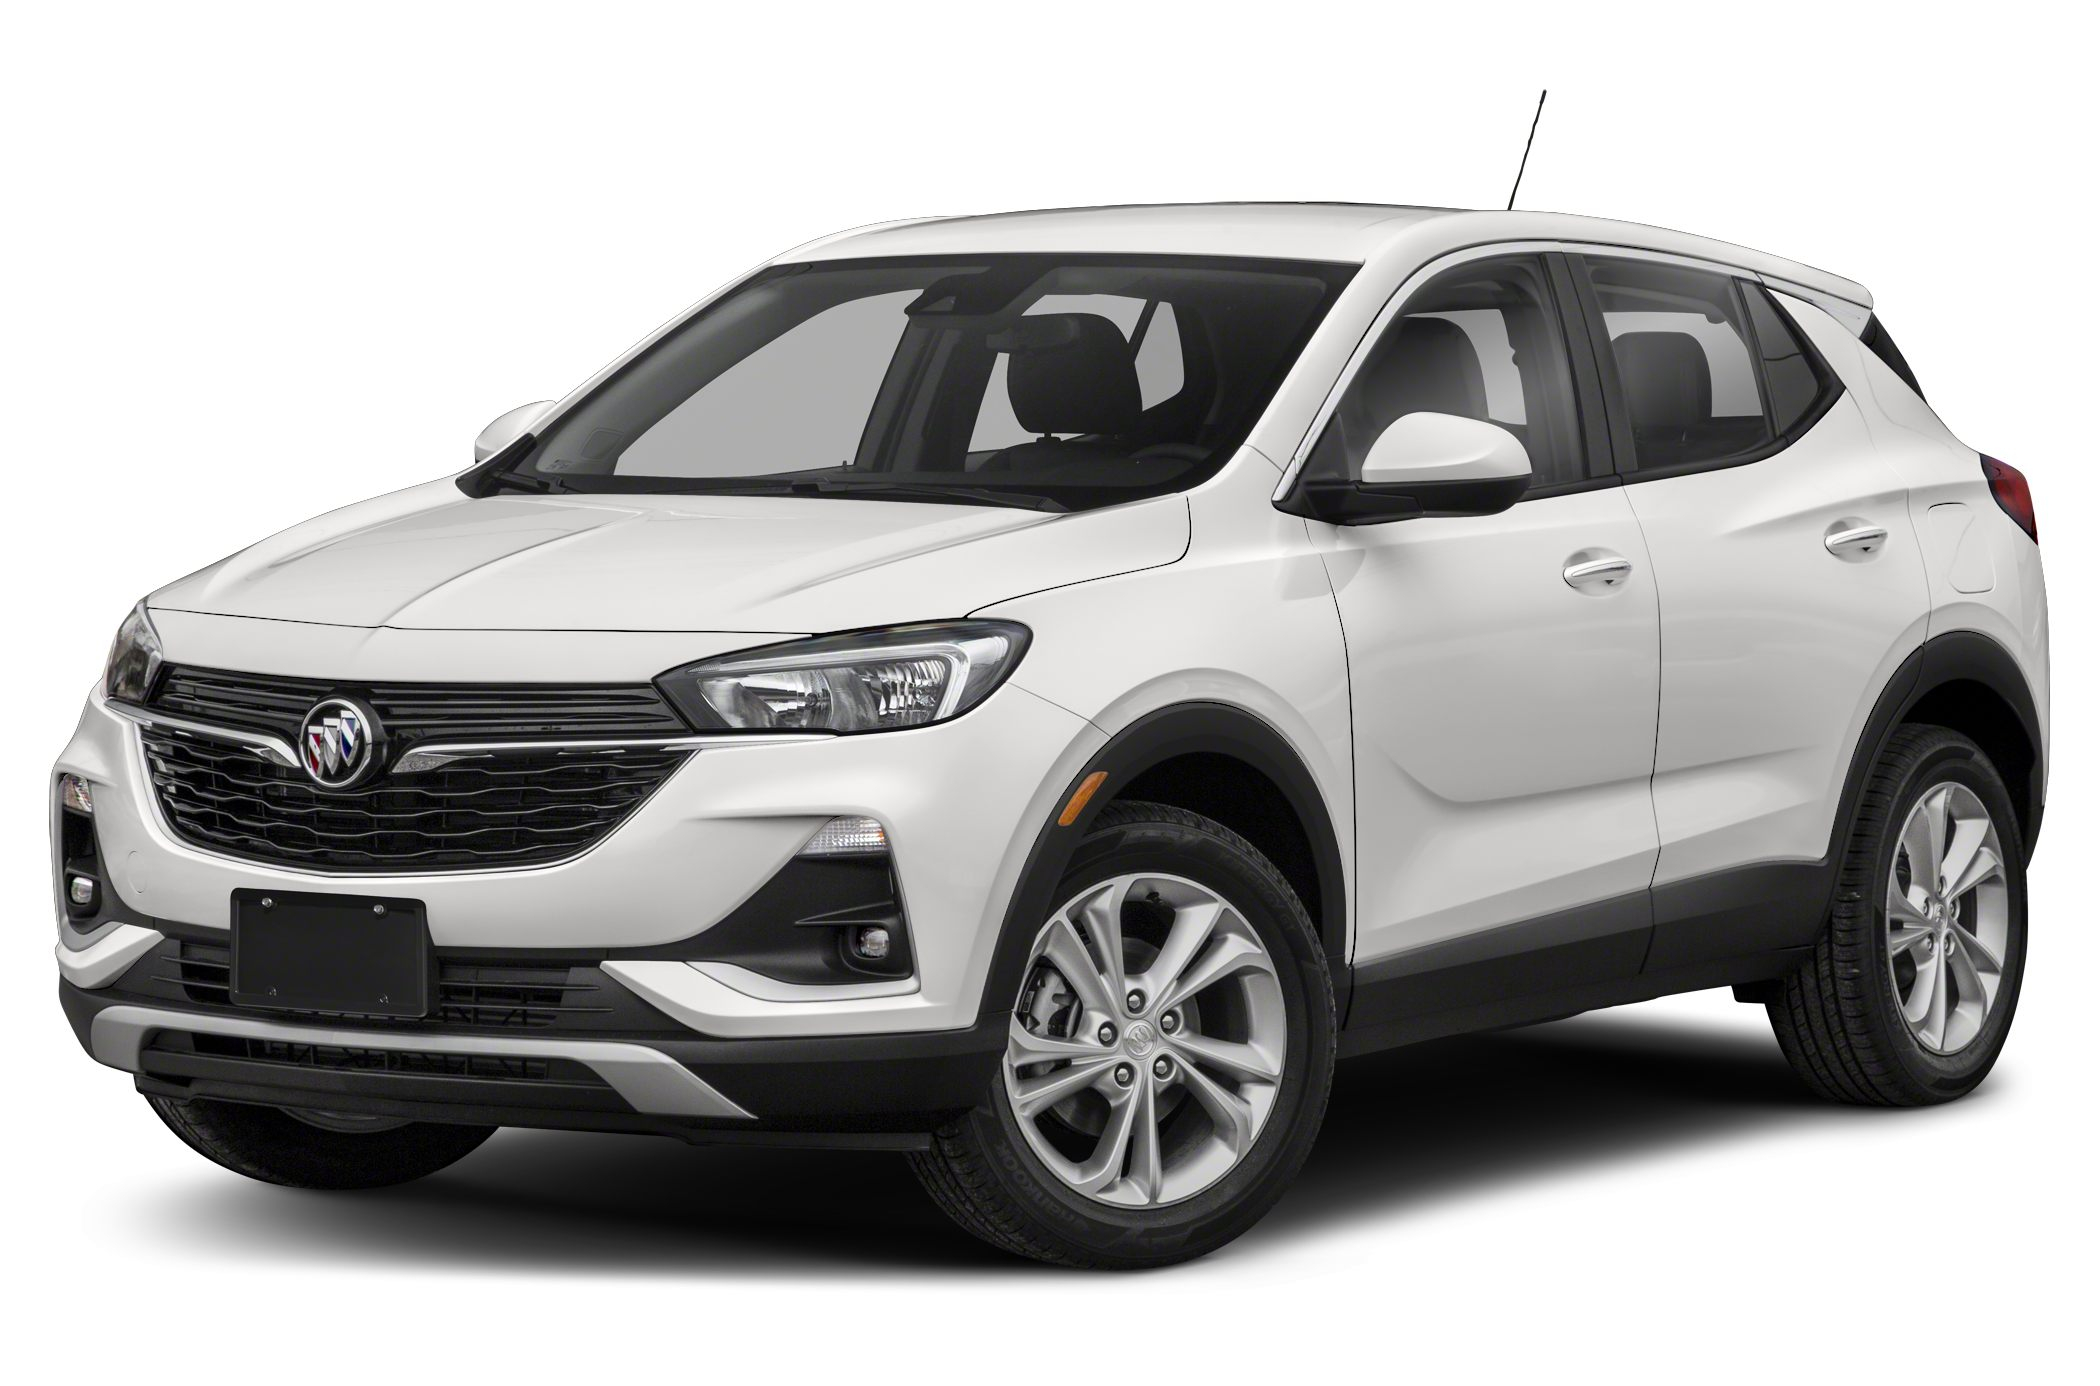 2021 Buick Encore Gx Essence All-Wheel Drive Specs And Prices 2021 Buick Encore Essence Engine, Awd, Msrp